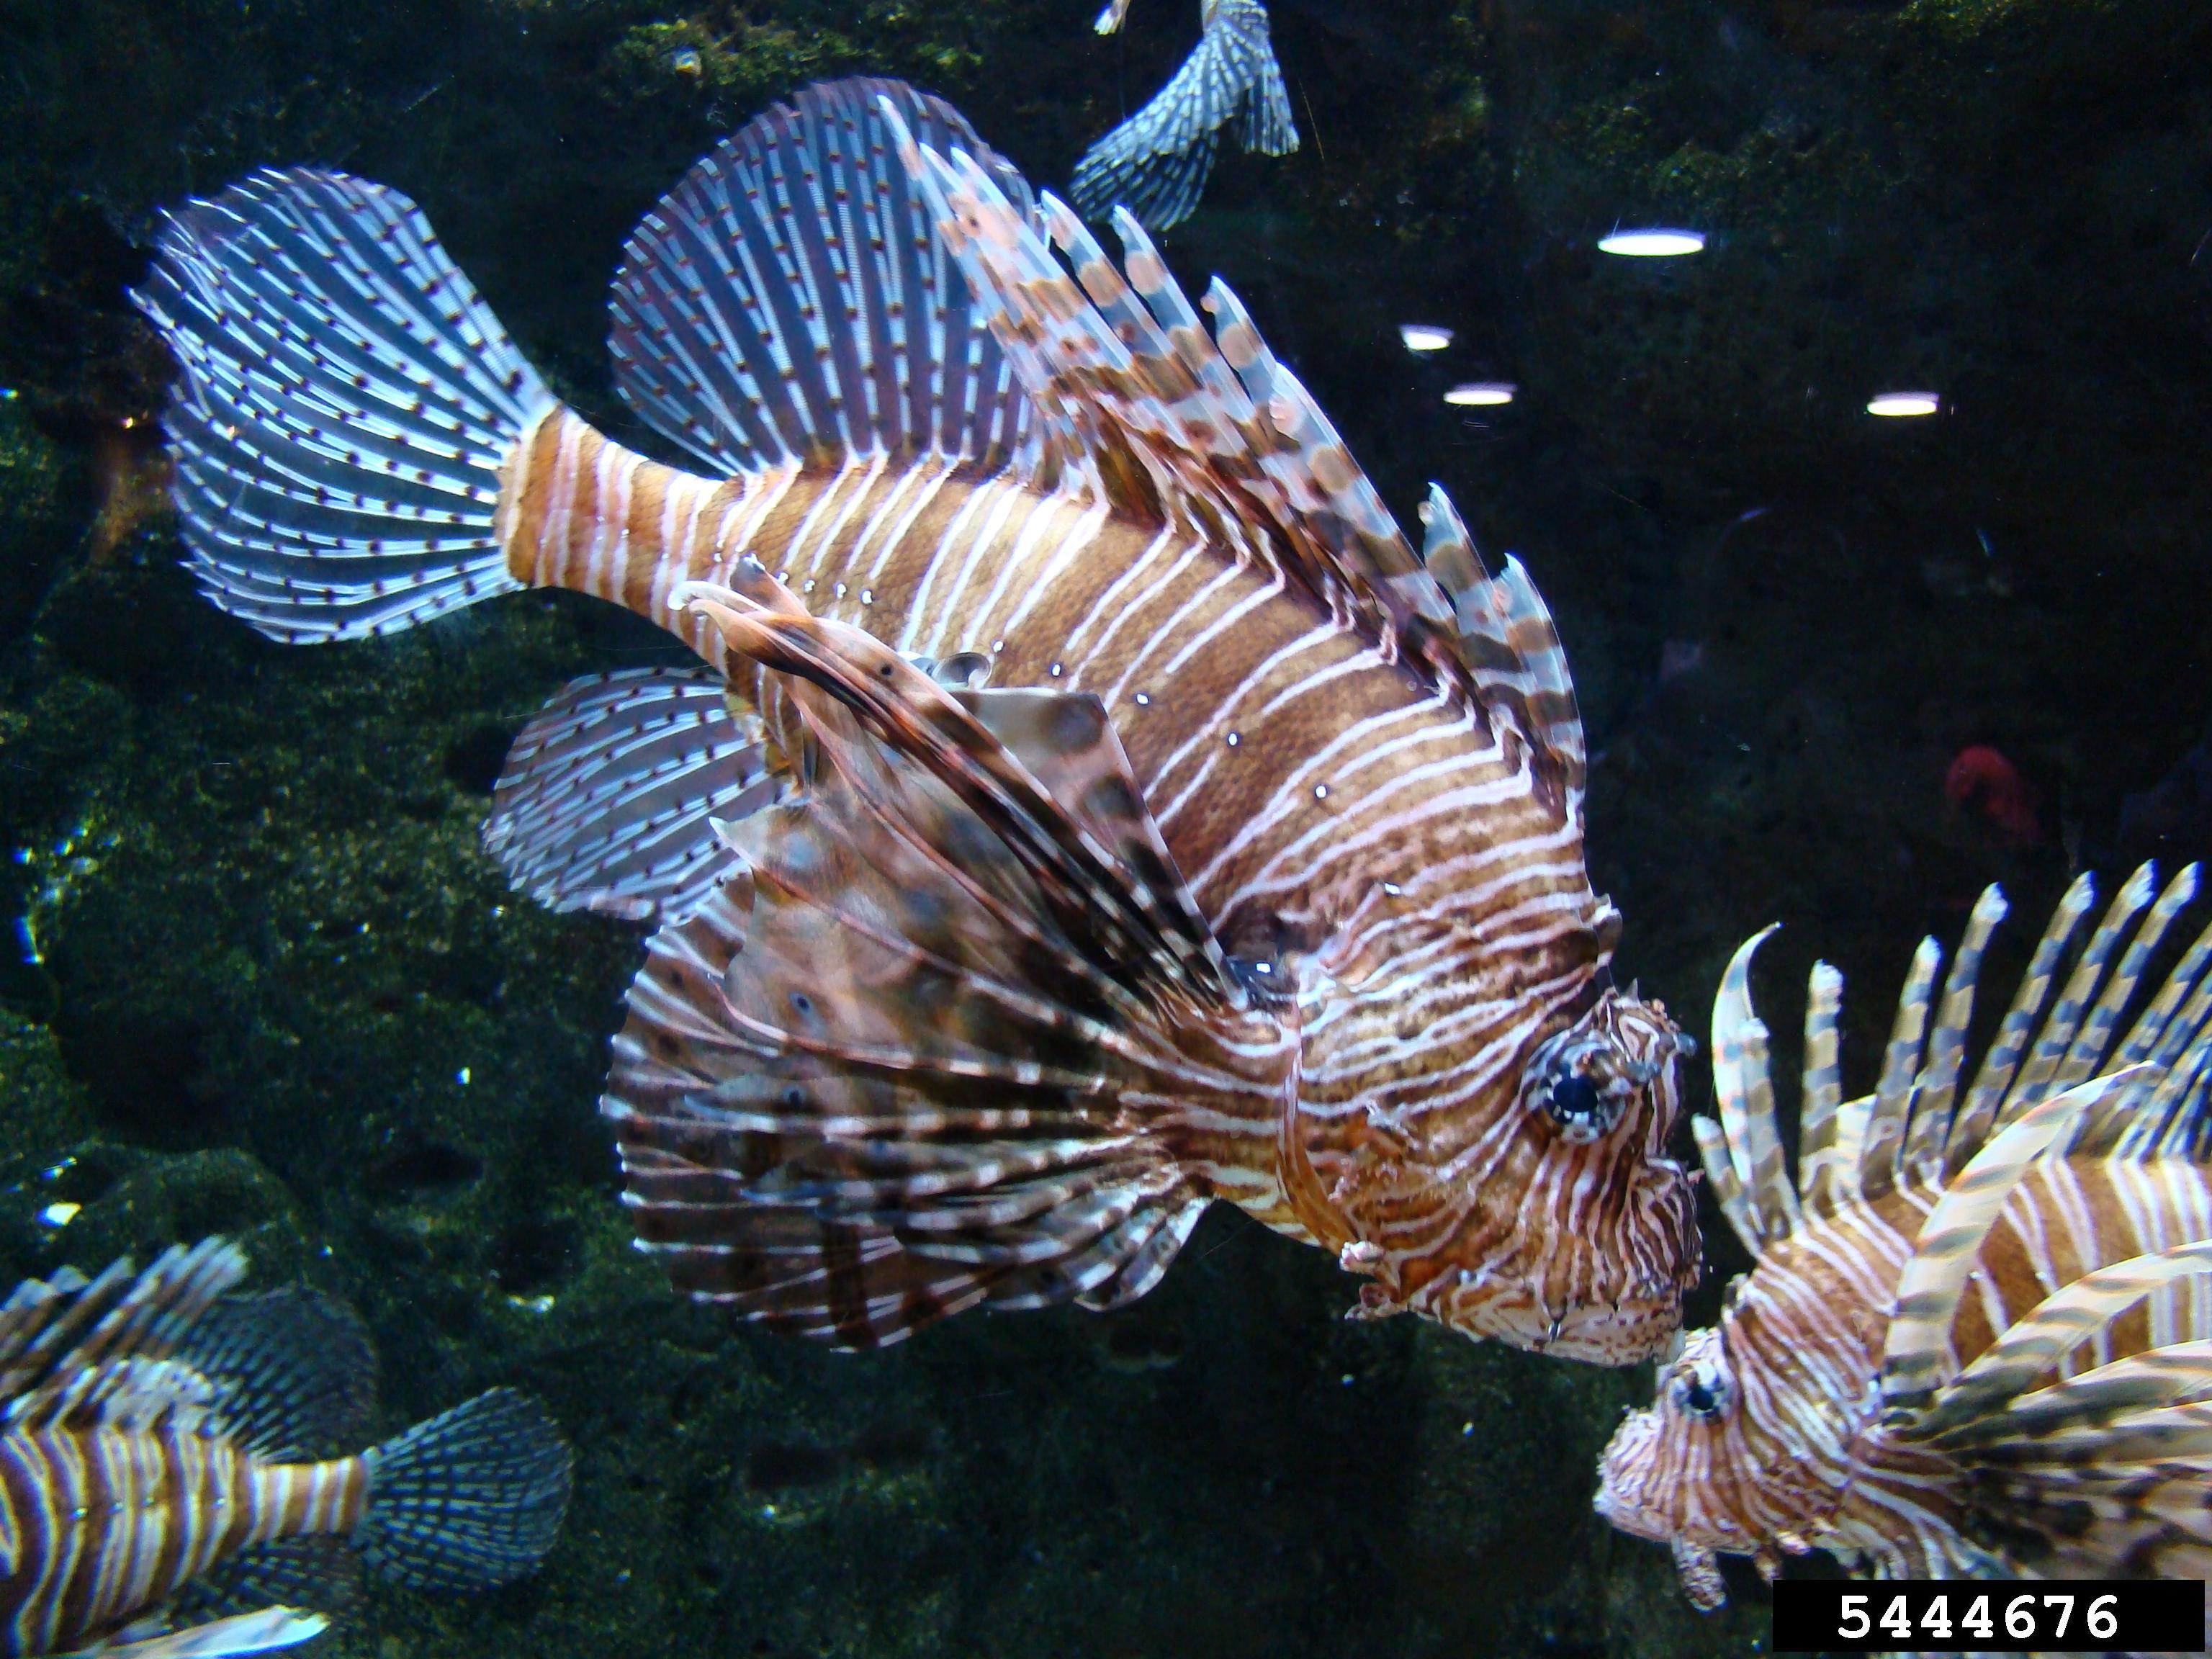 Invasive Species Of The Day February 24 Lionfish And